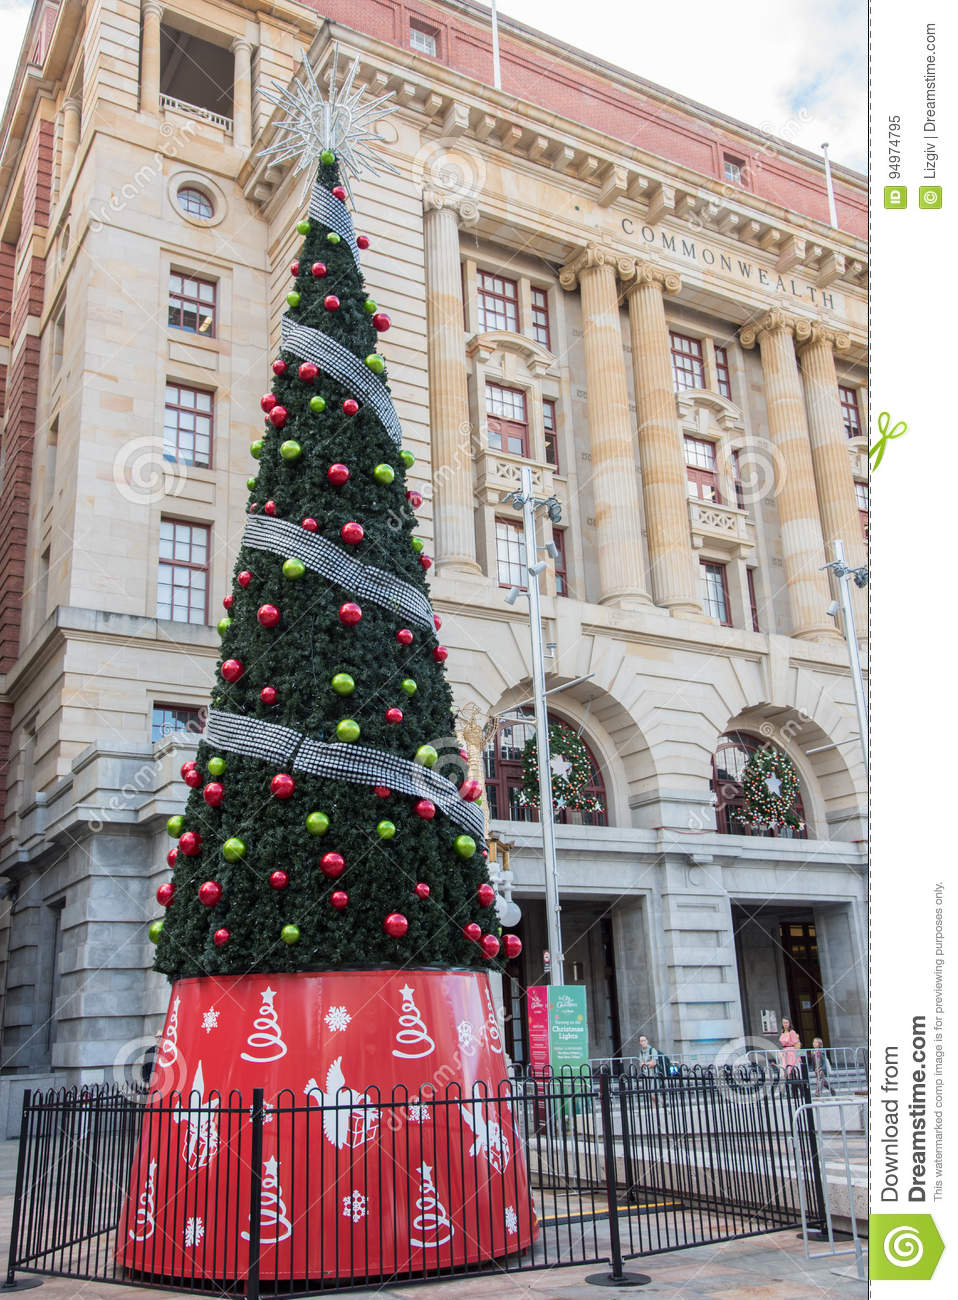 perth post office at christmastime - Post Office Christmas Hours